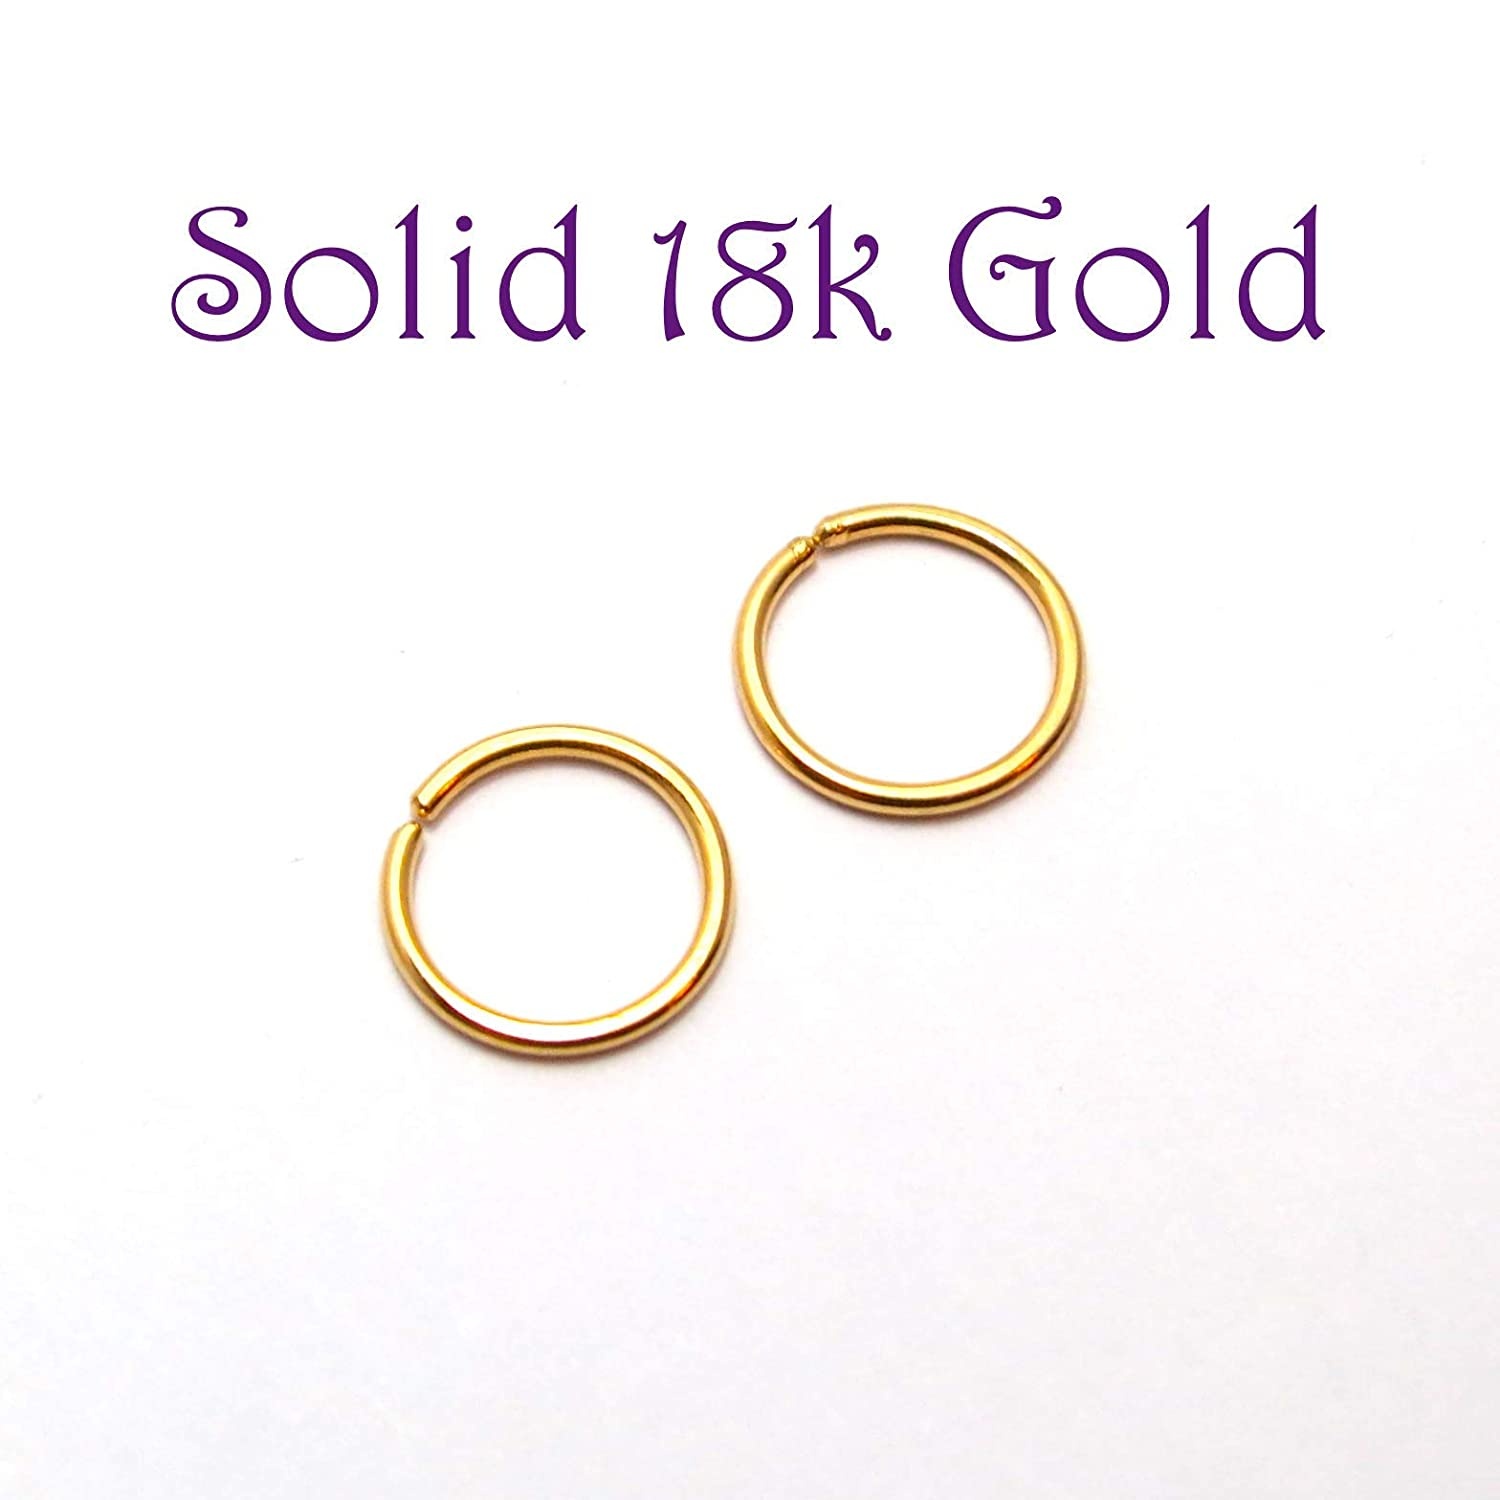 18ct Solid Gold Continuous Endless Hoops Hypoallergenic 18k Gold Hoop Earrings PAIR Small 10mm Sleepers